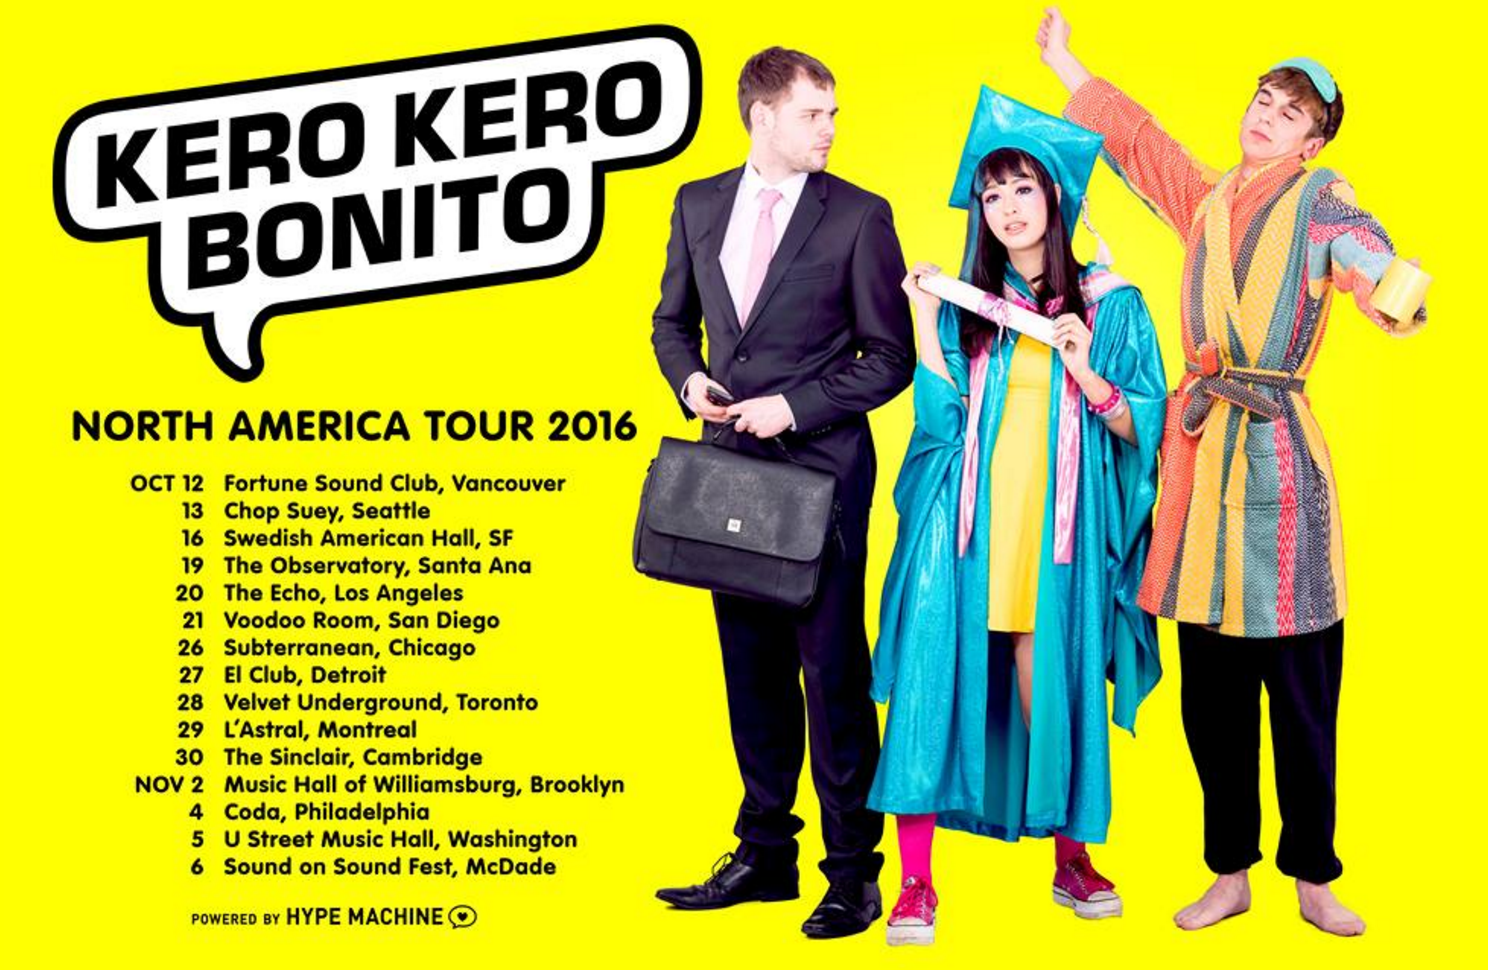 California with Kero Kero Bonito